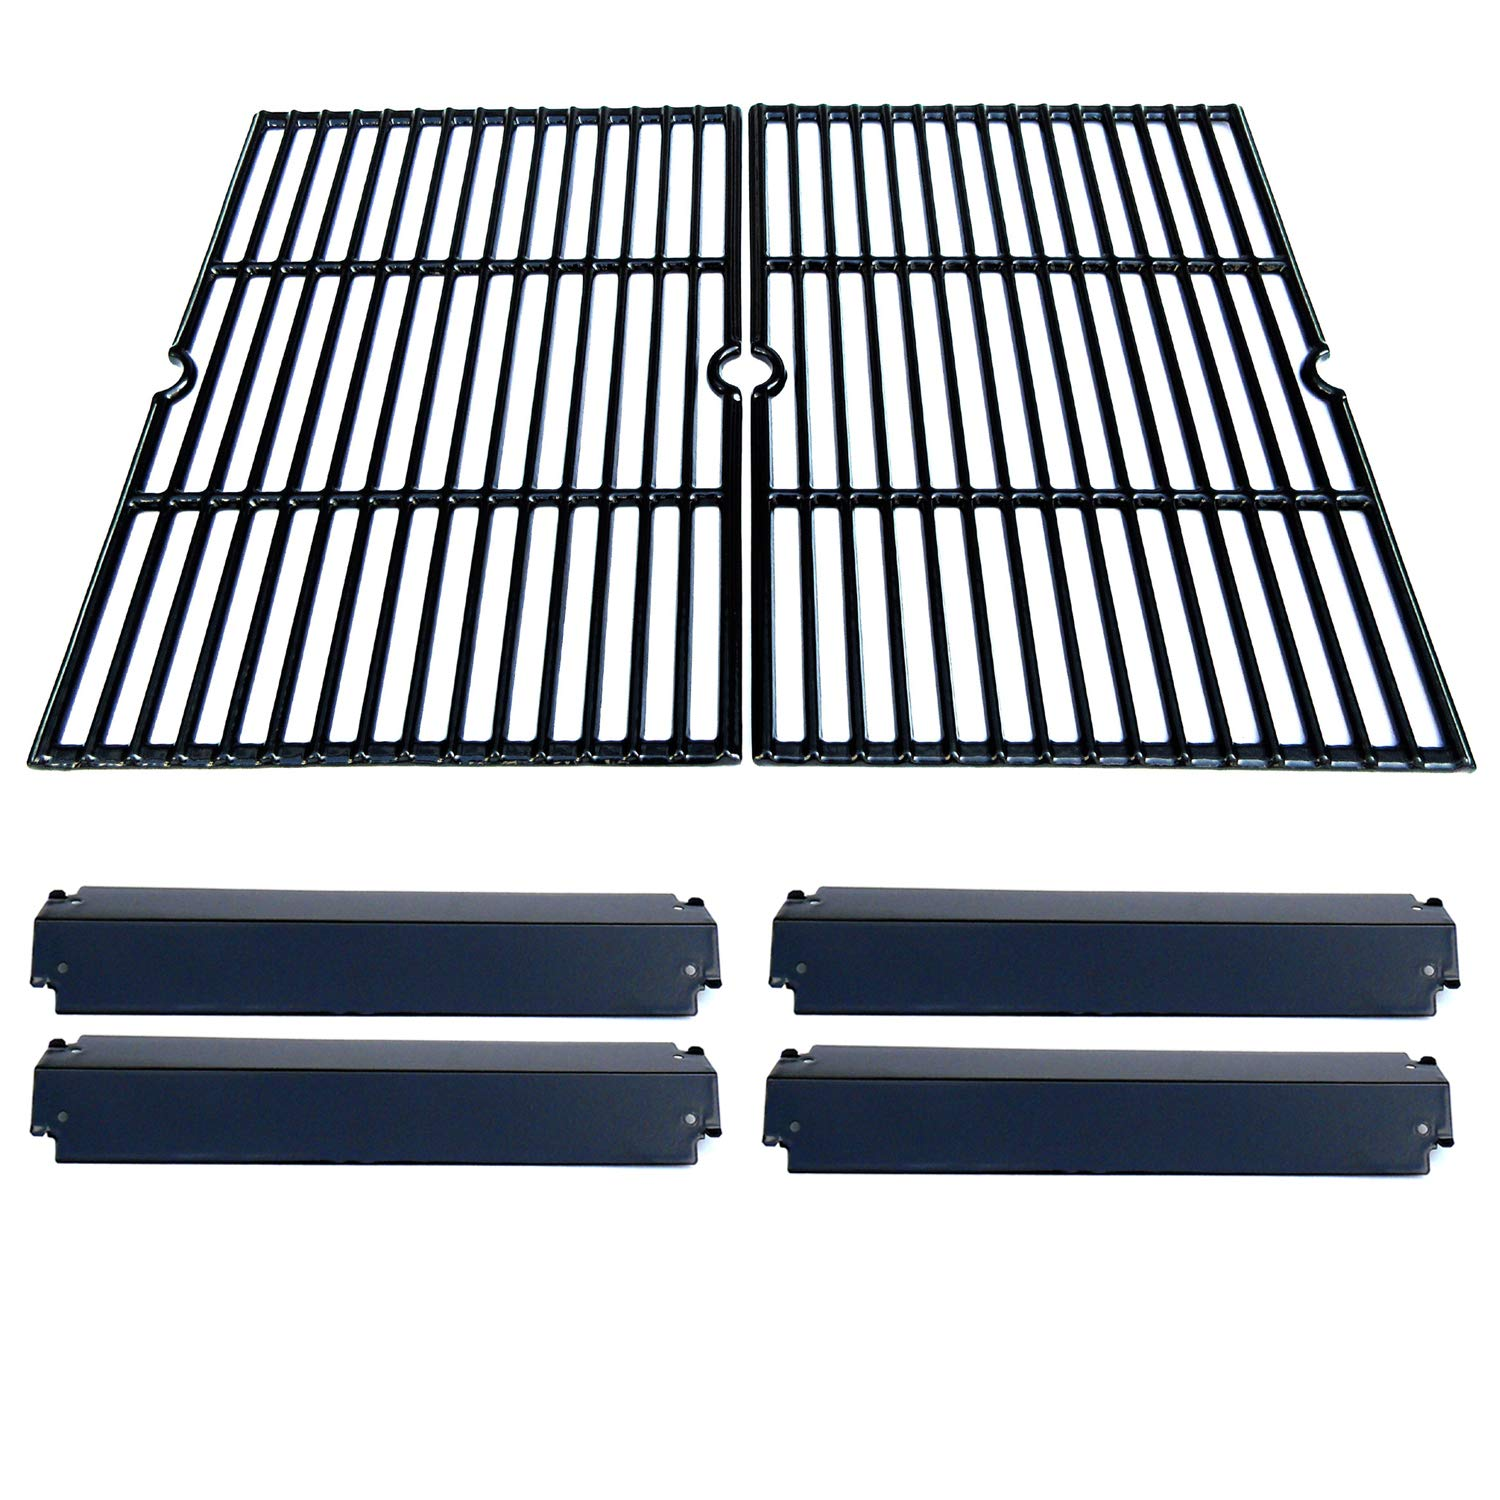 Direct Store Parts Kit DG232 Replacement Charbroil, Kenmore, Coleman,Gas Grill Repair Kit Heat Plates & Cooking Grill (Porcelain Steel Heat Plate + Porcelain Cast Iron Cooking Grid) by Direct Store